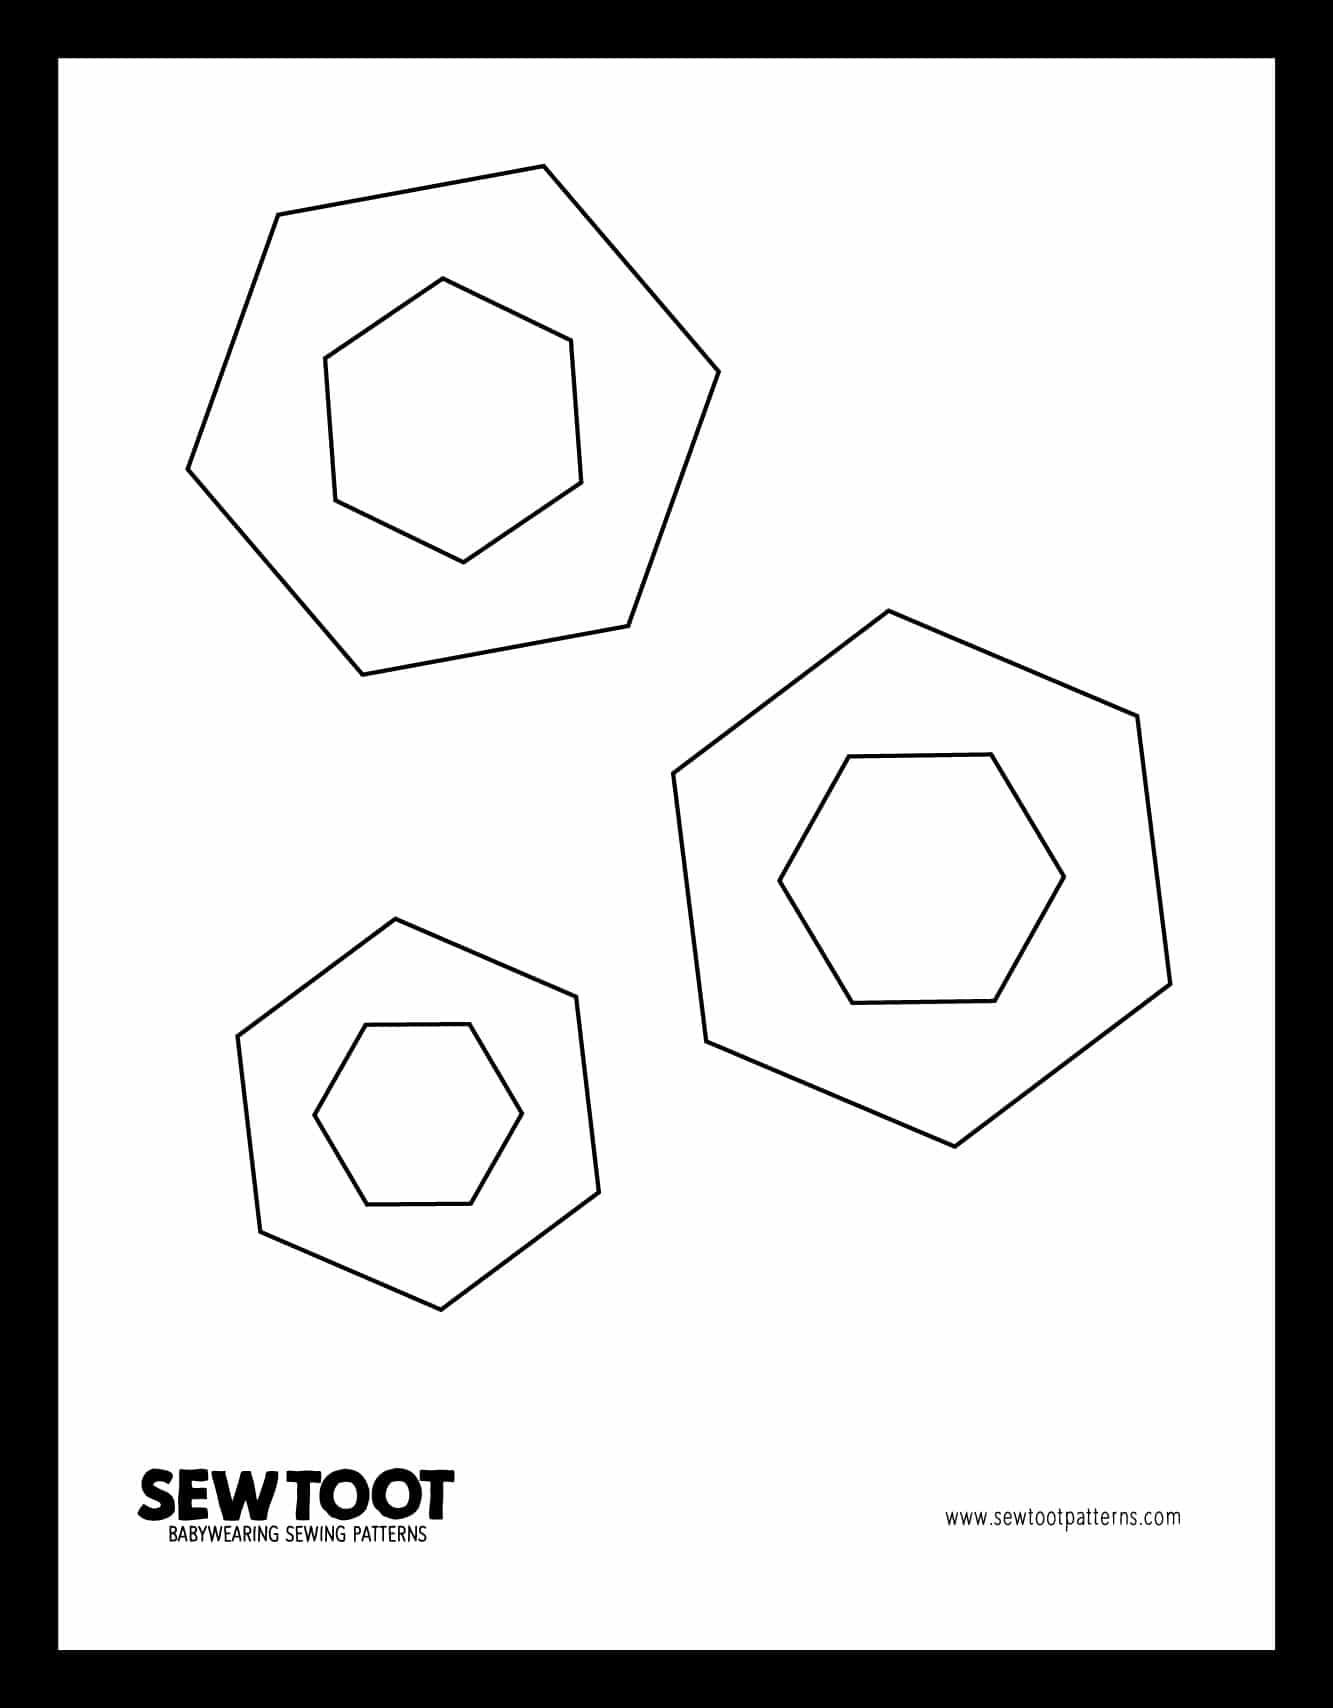 Sewing Sheet Printables Sew Toot